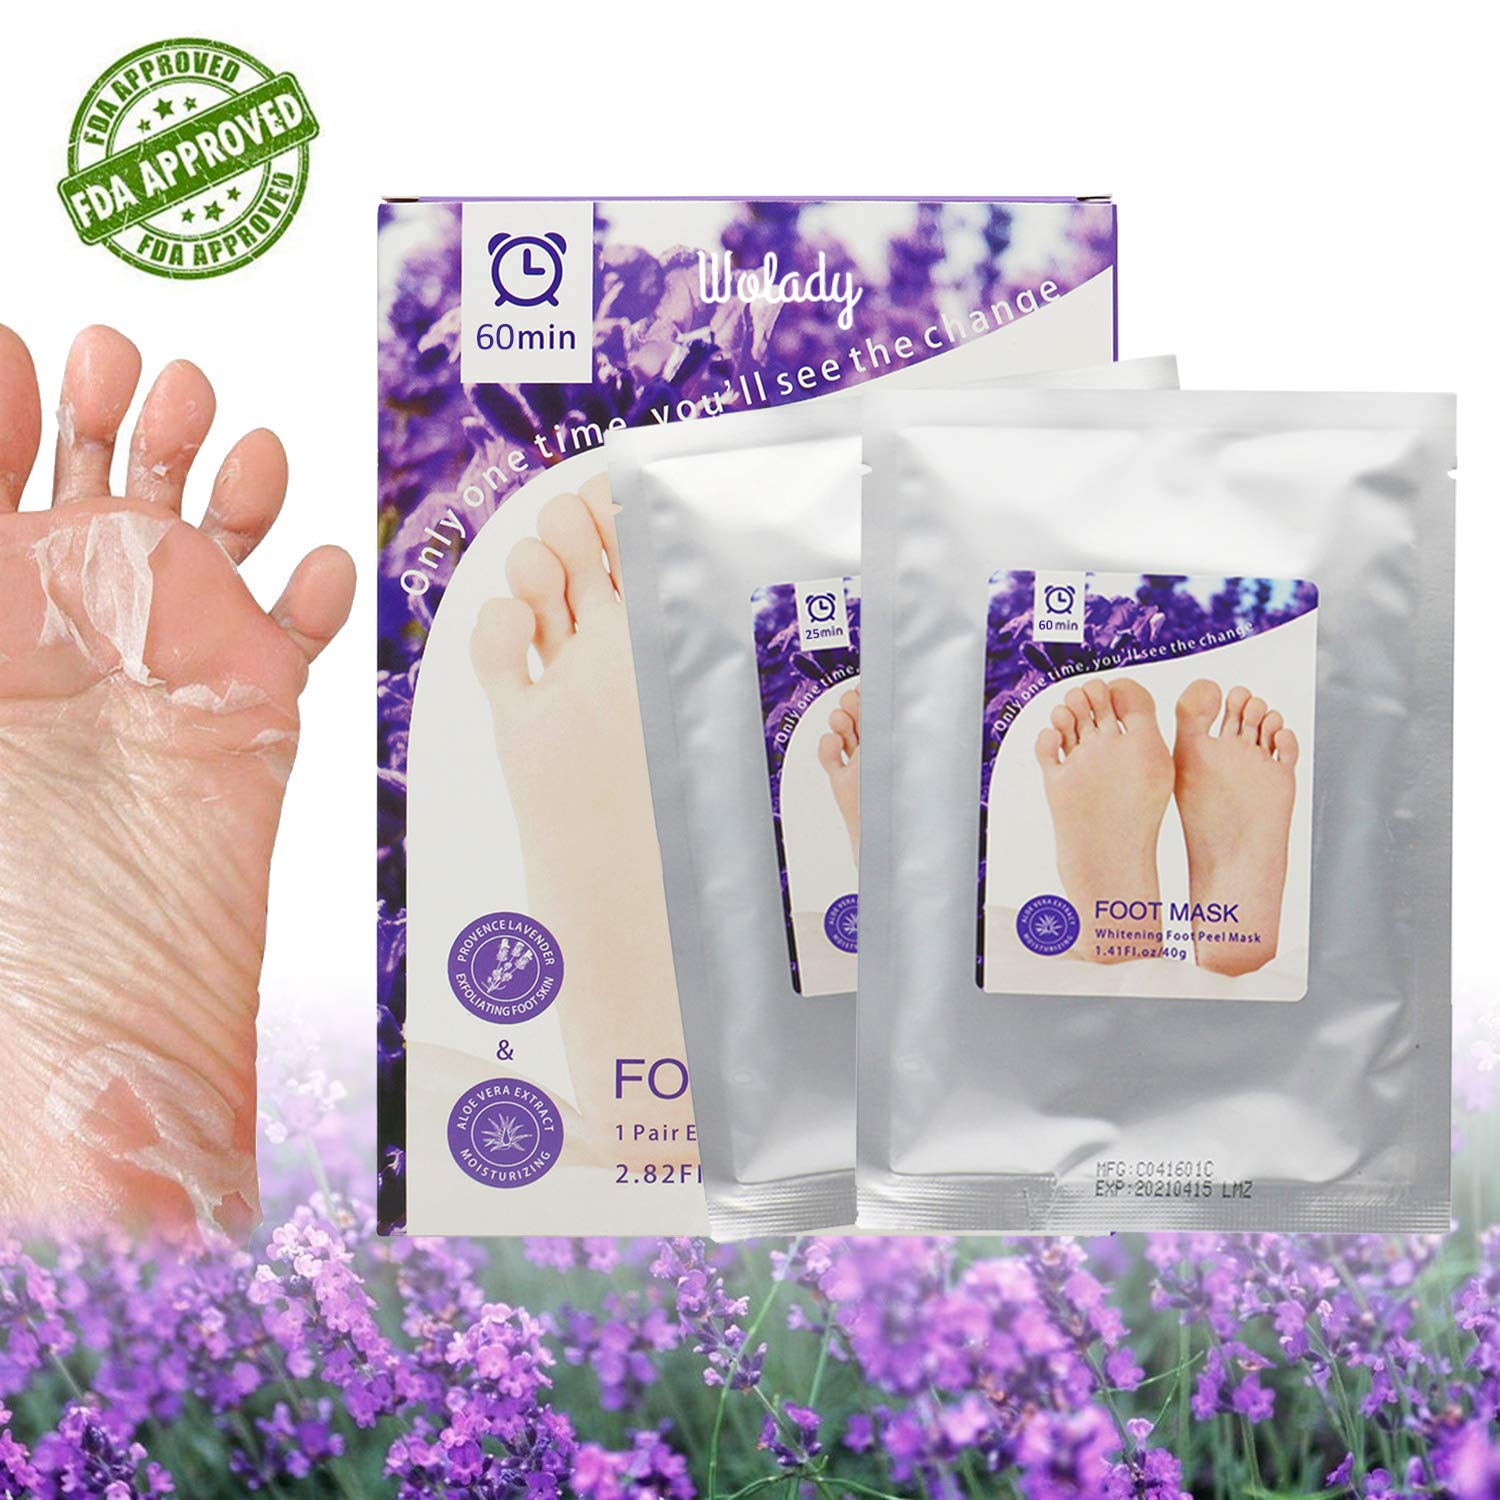 Foot Peeling Mask, Wolady Foot Exfoliating Mask/Whitening and Moisturizing Mask, Peeling Off Calluses & Dead Skin, Making Your Feet White and Smooth(2 pairs)